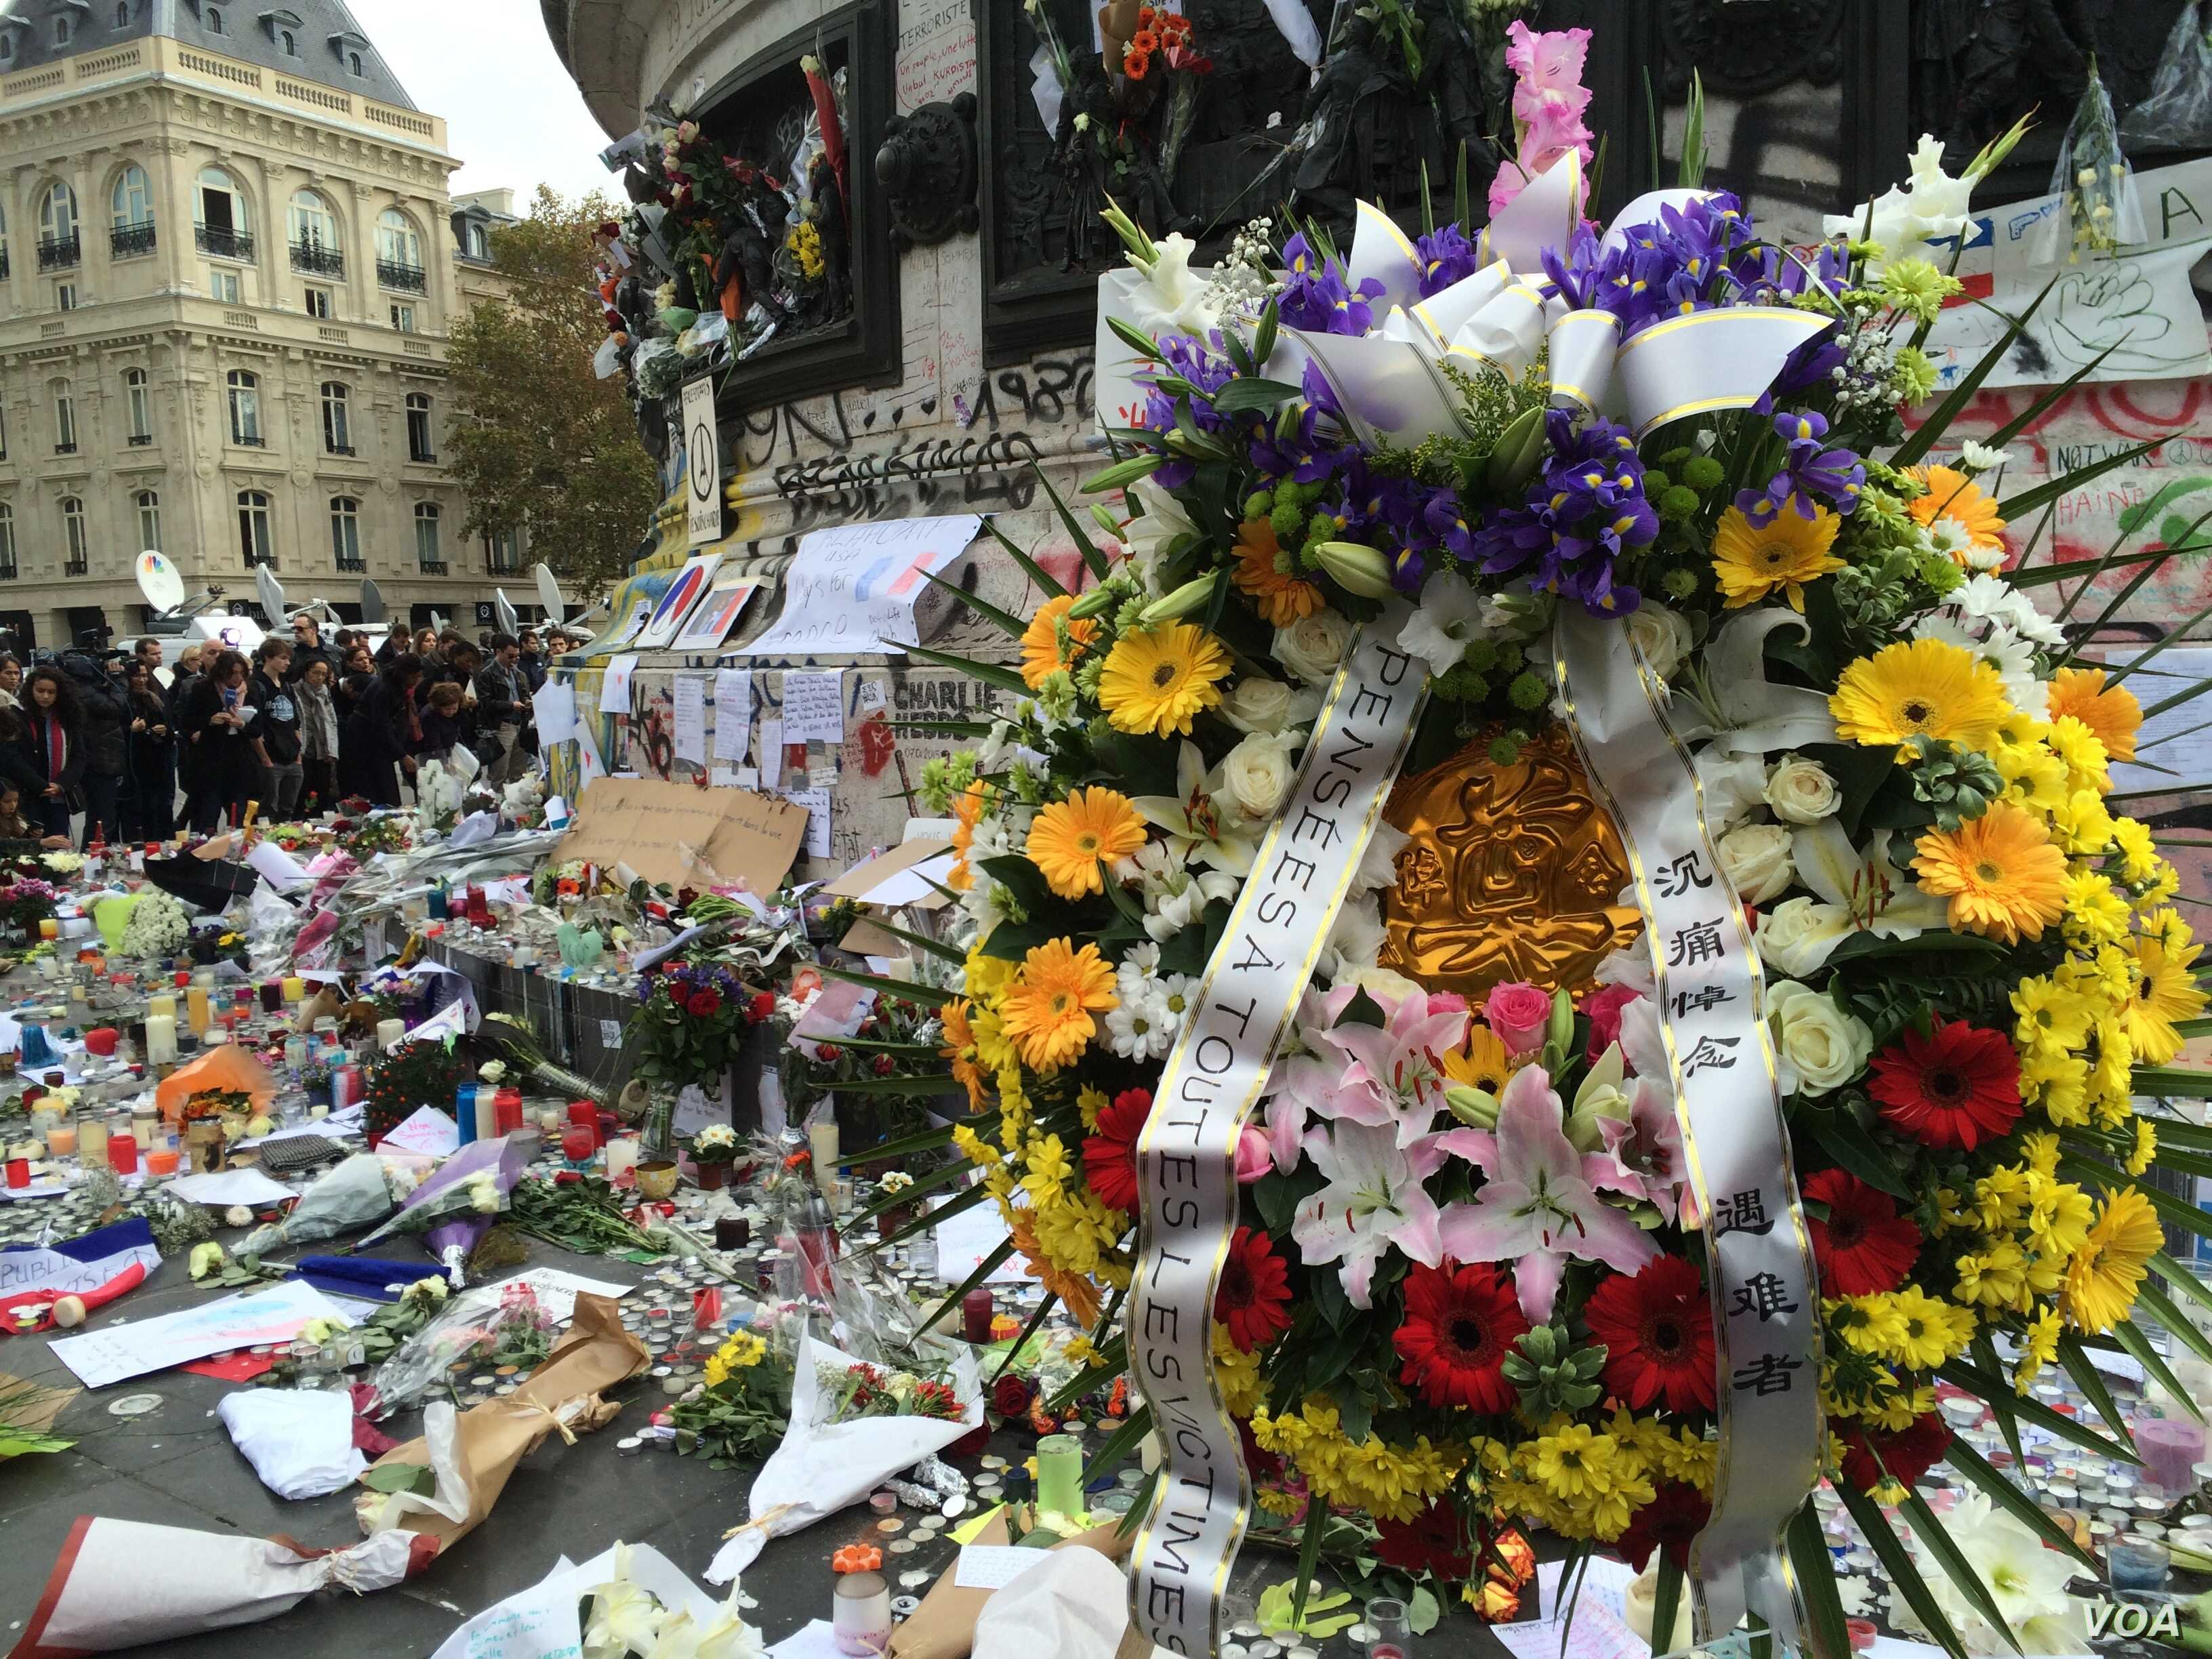 Mementos, flowers and messages left at the Place de la Republique in Paris, France in honor of the November 13 terror attacks, Nov. 16, 2015. (Photo: D. Schearf / VOA)